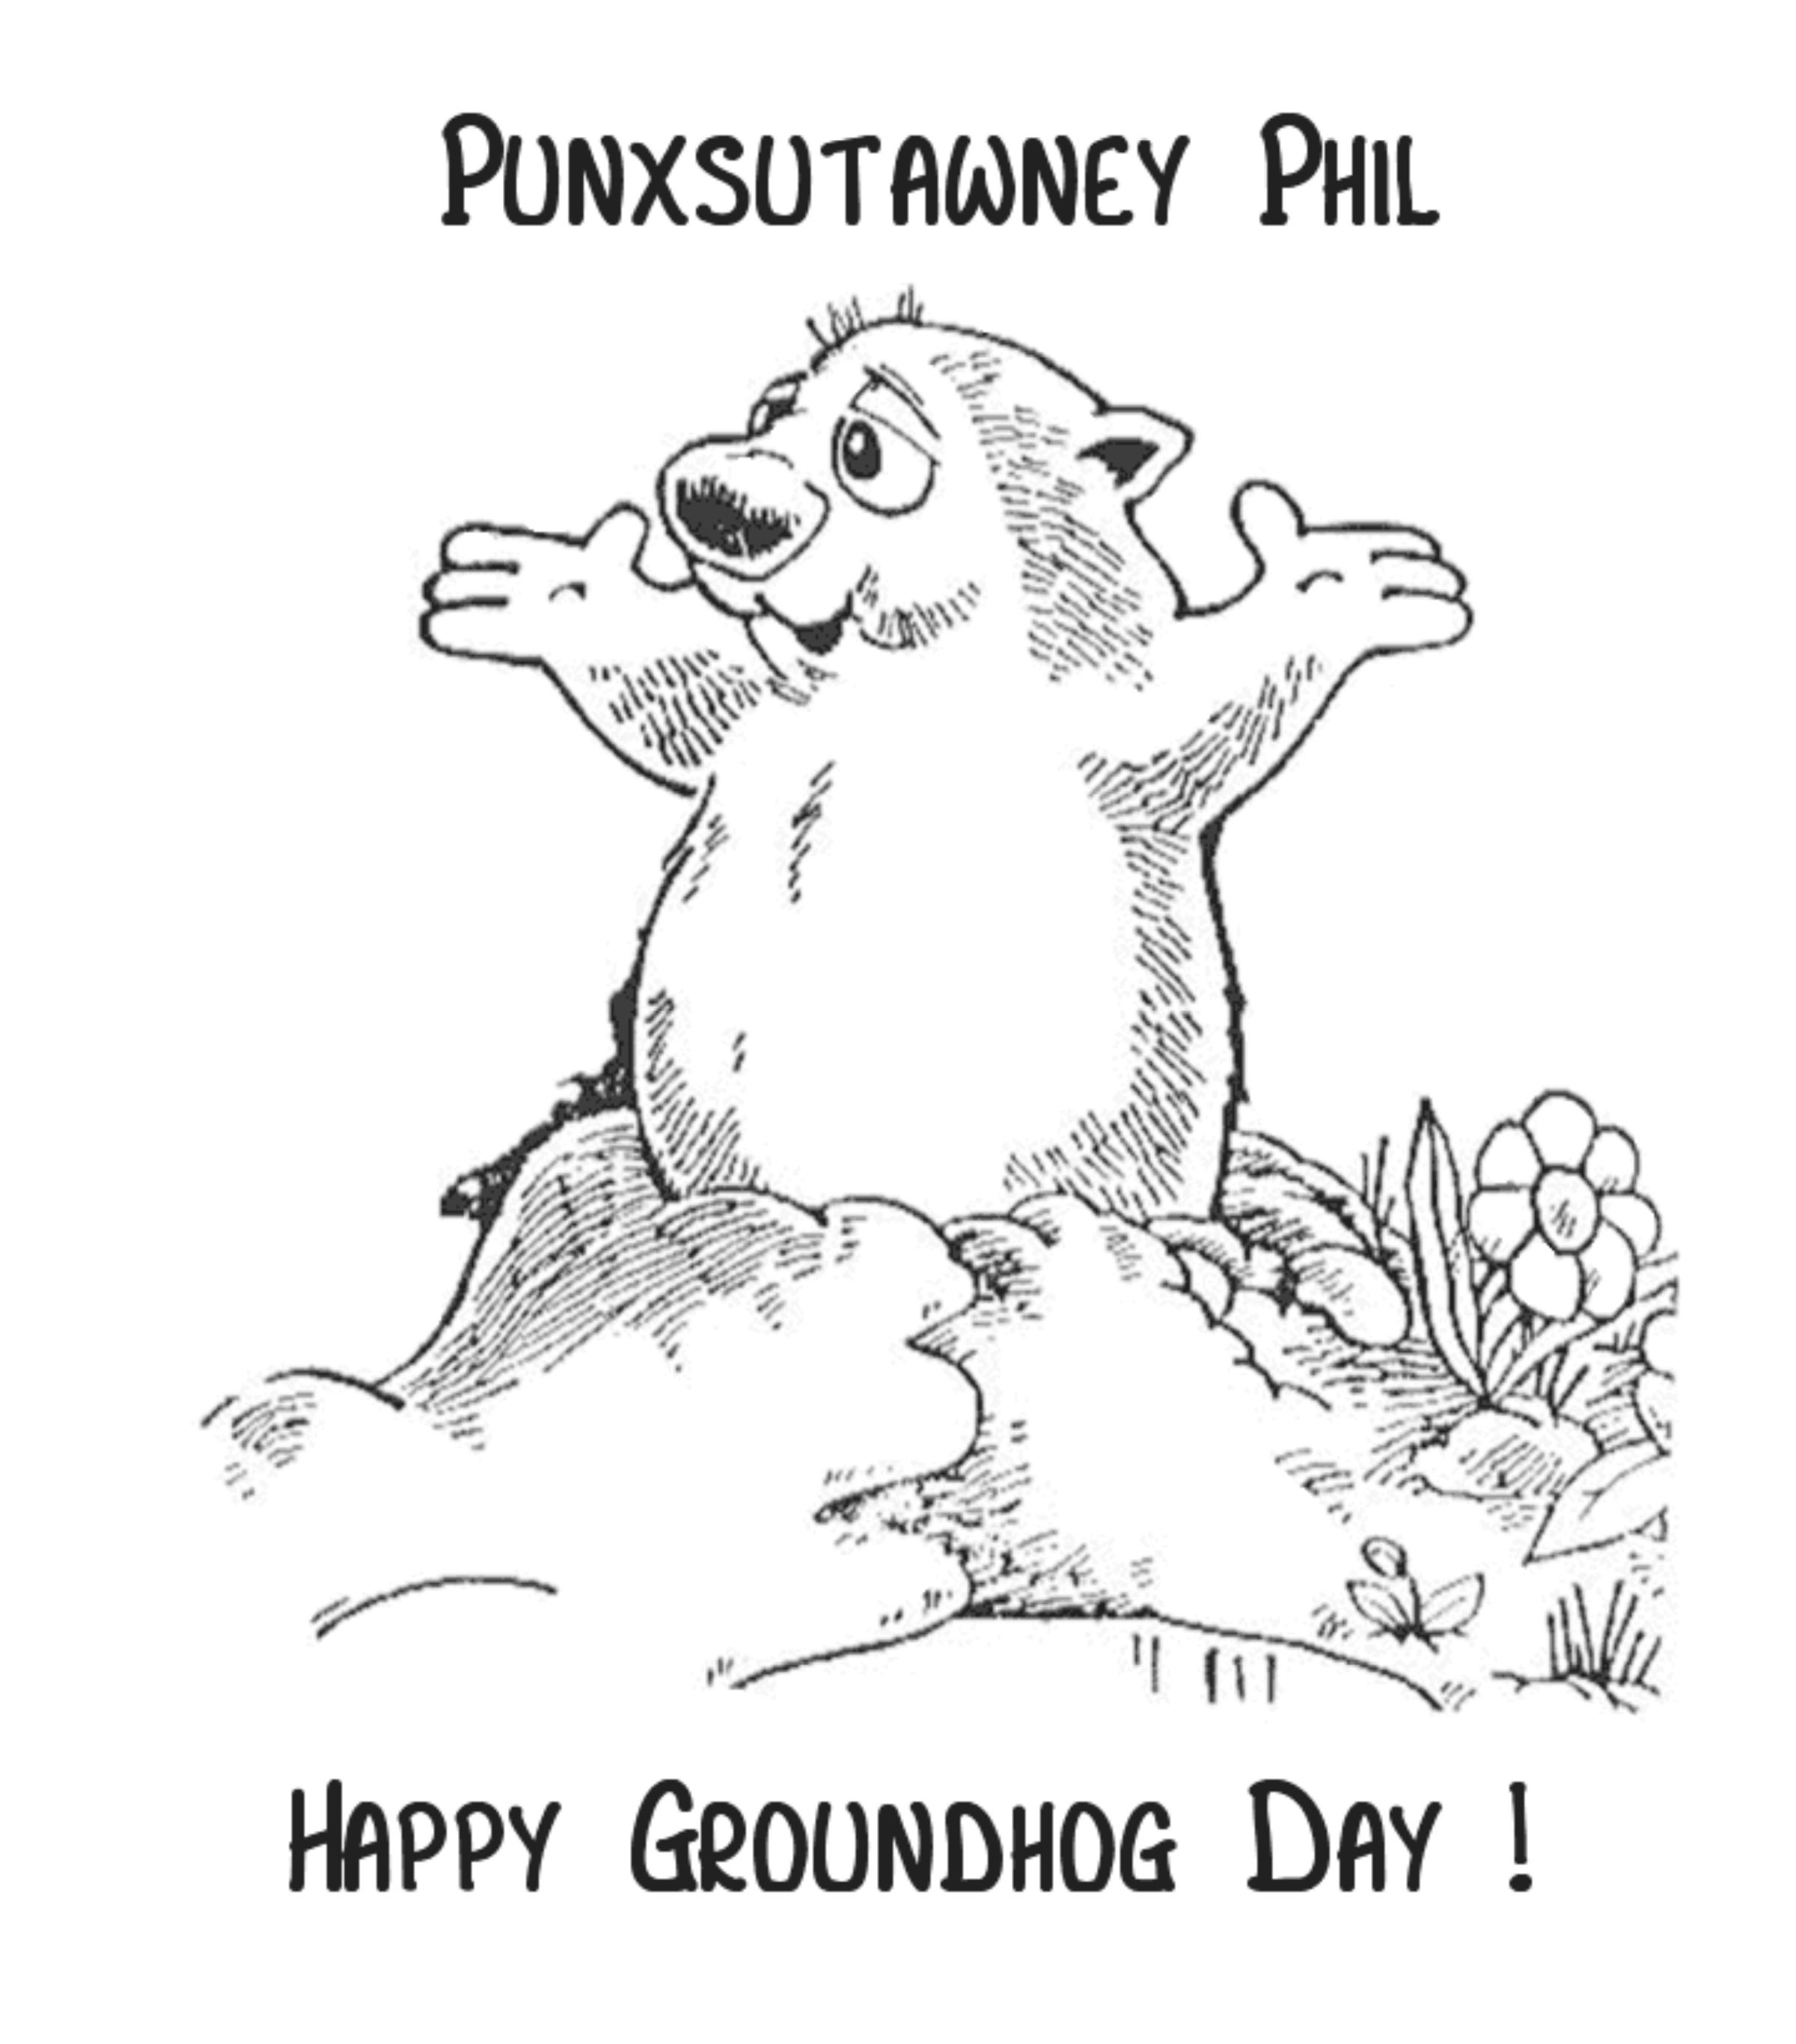 Coloring ~ Groundhog Day Coloring Pages Free Printable For Kids - Free Printable Groundhog Day Booklet